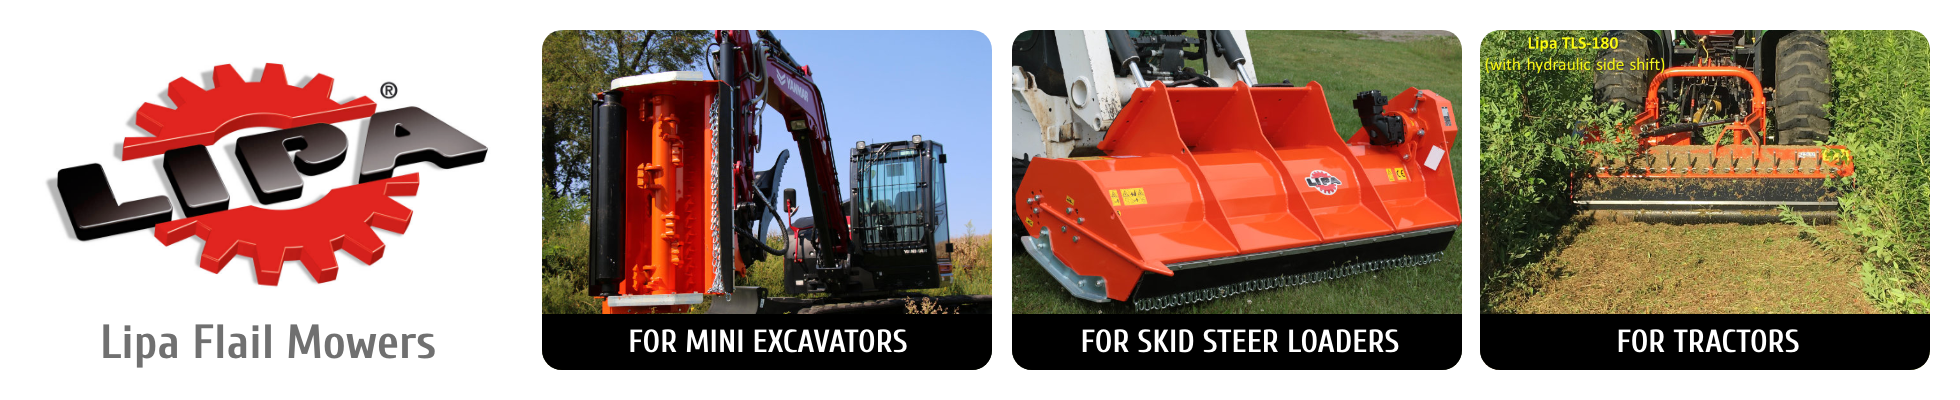 Lipa Flail Mowers for Mini Excavators, Skid Steer Loaders, and Tractors.